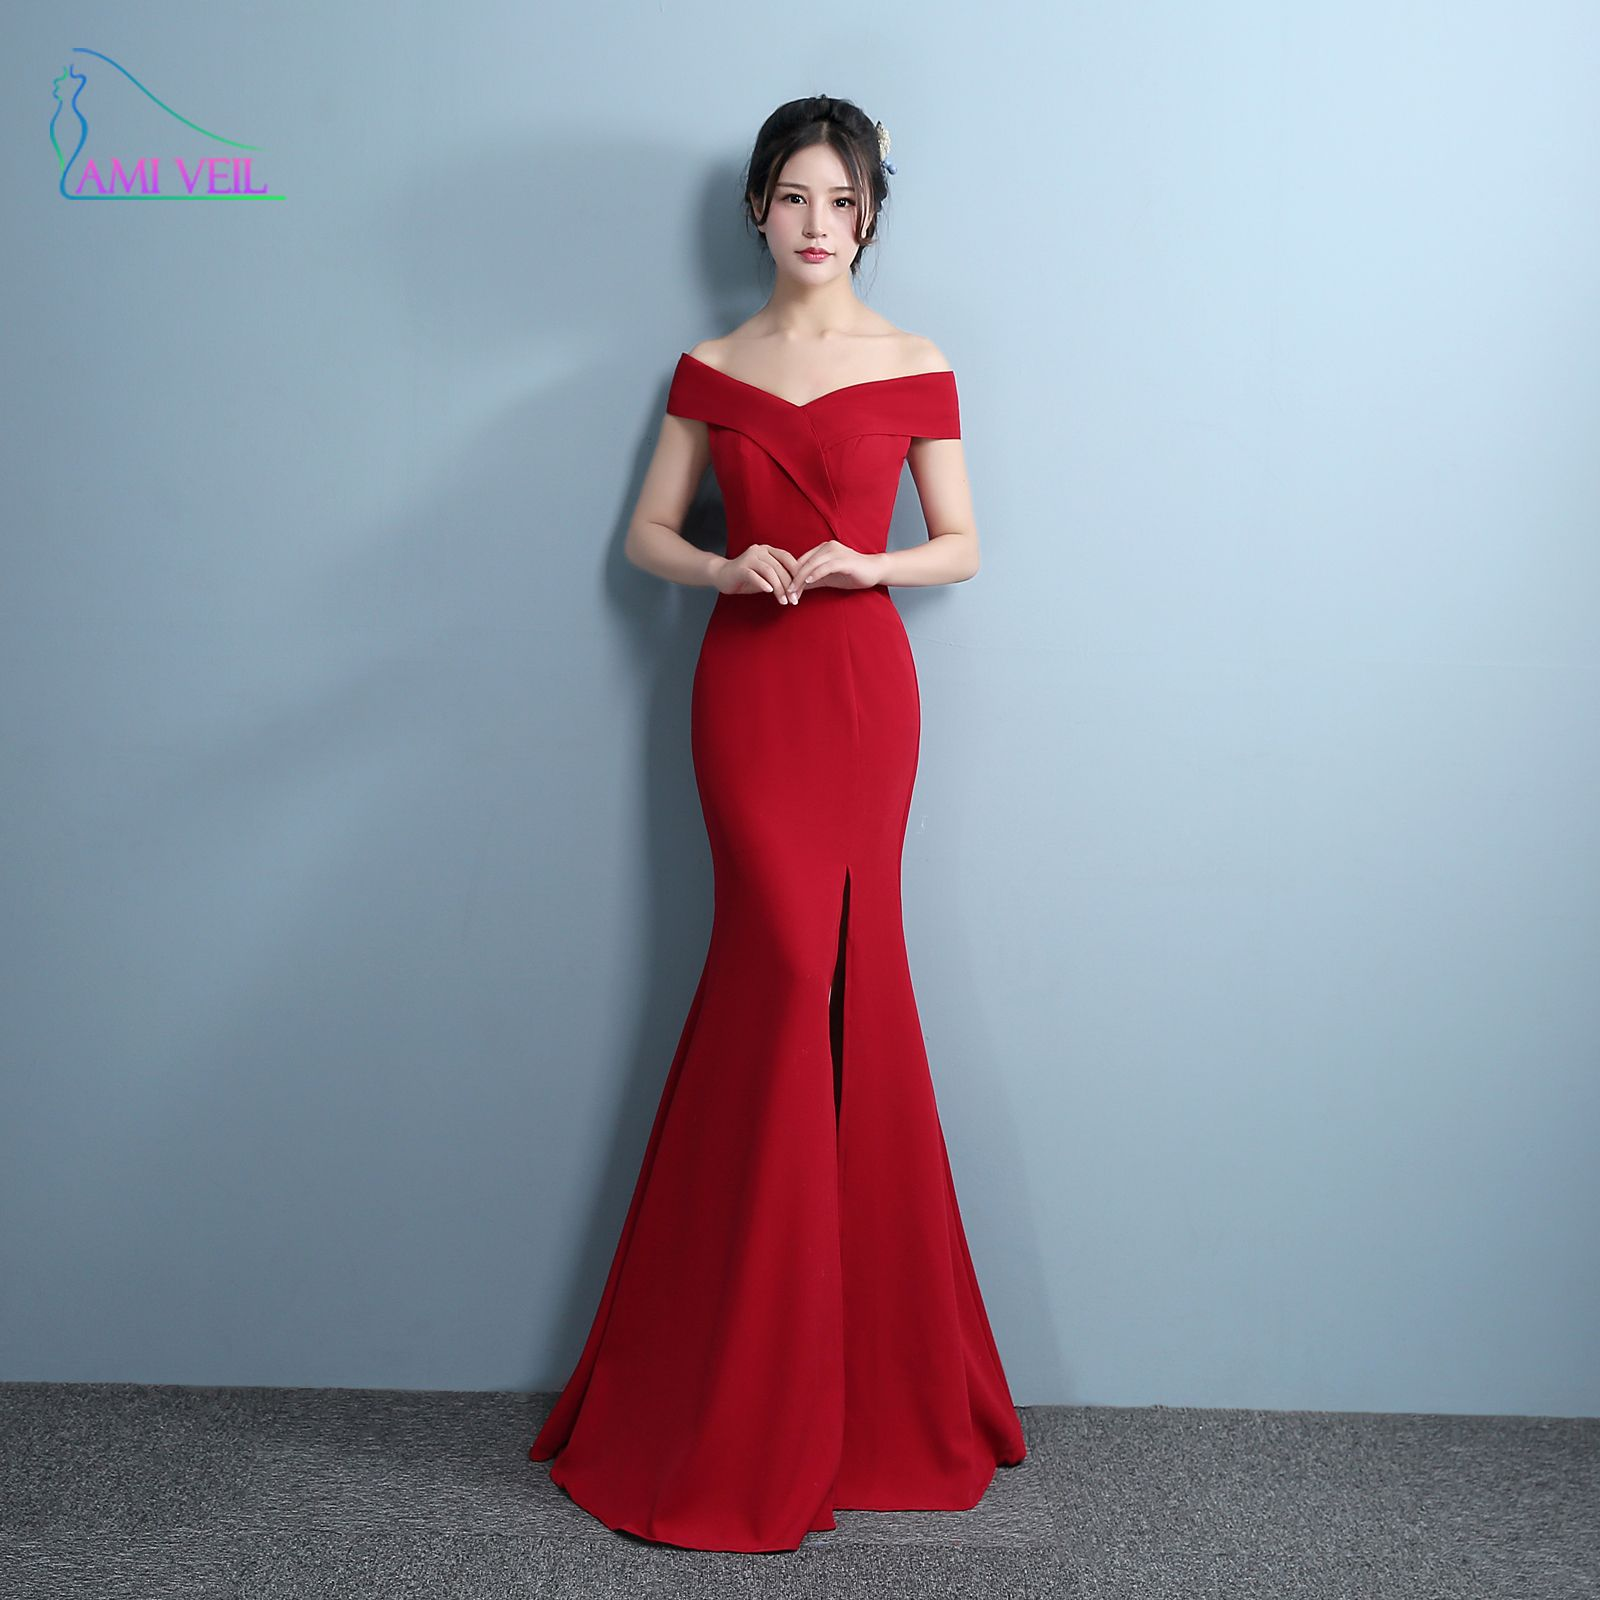 Mermaid designer evening gowns side split red prom dress sexy long